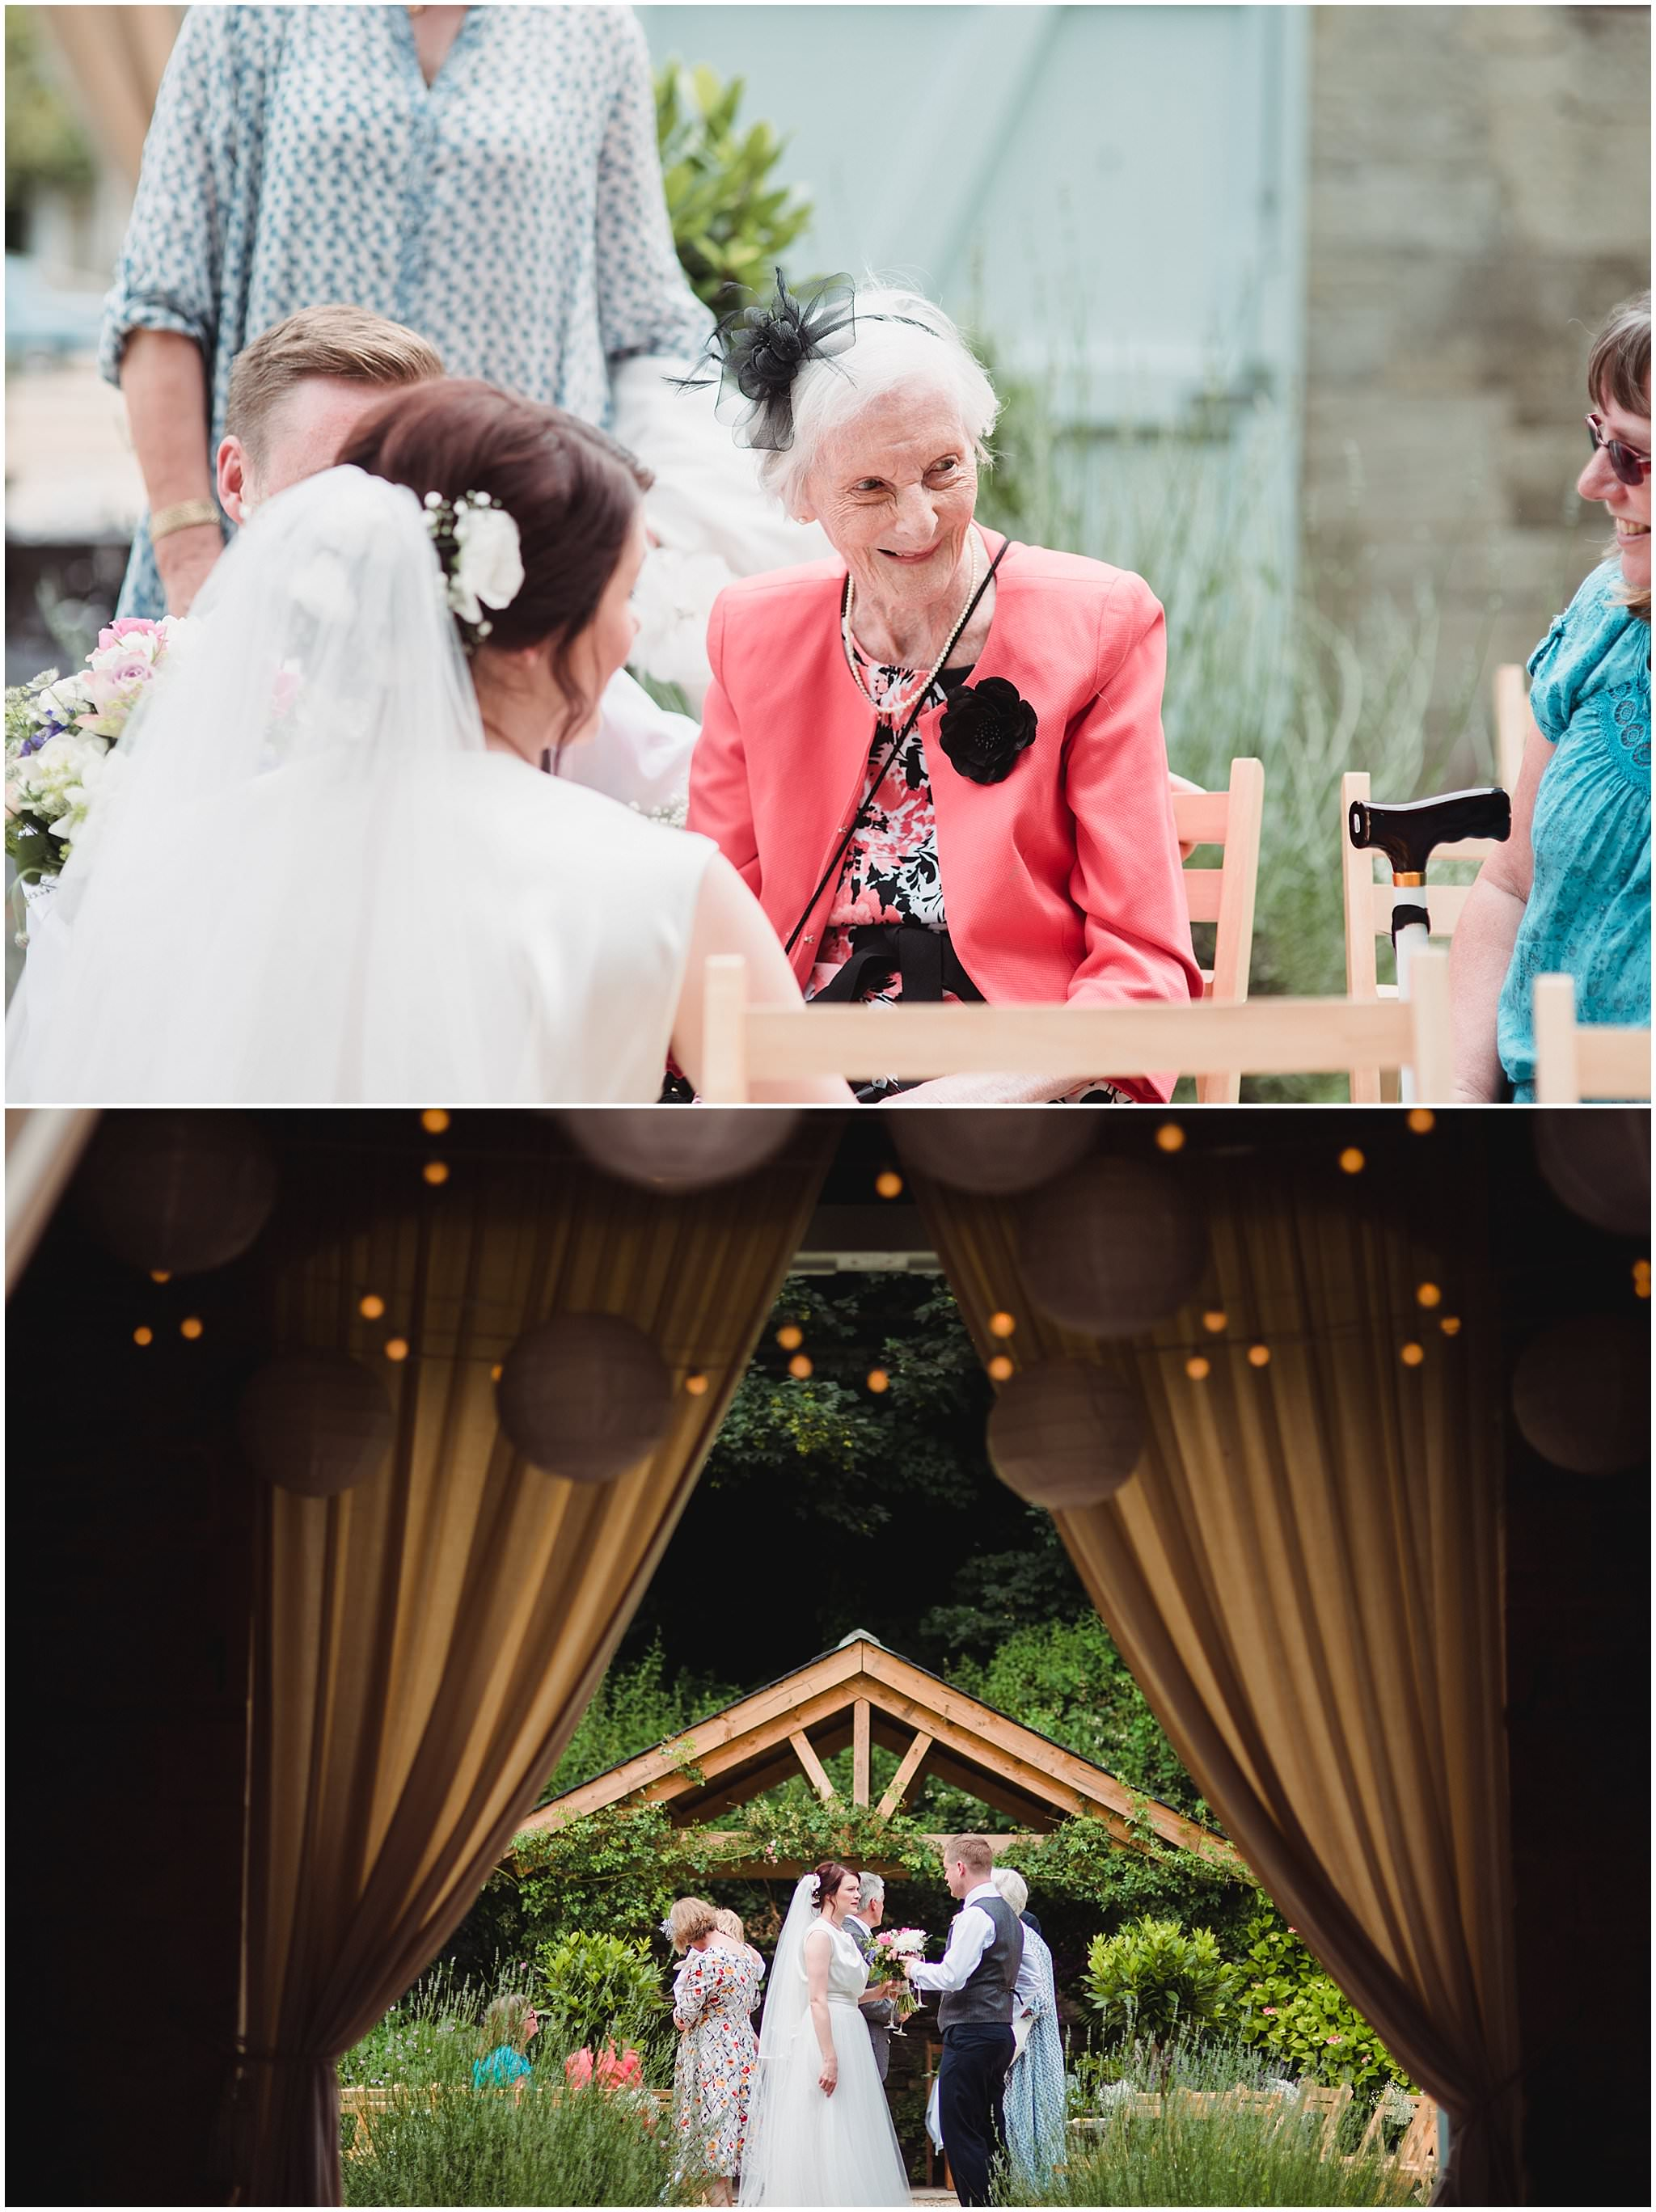 fay & tim wedding at ashley wood farm_0467